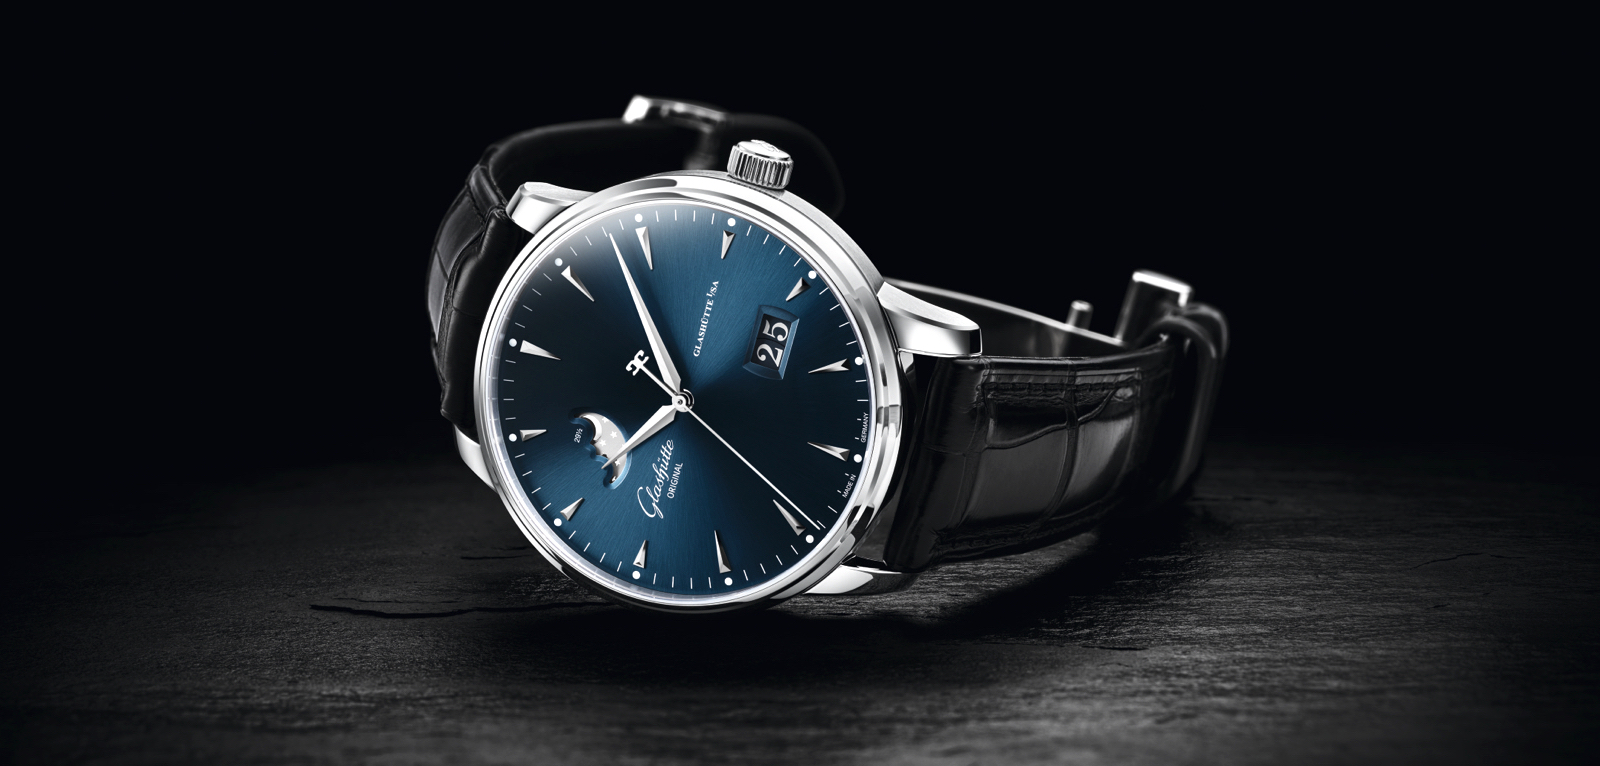 Senator Excellence Panorama Date Moon Phase Blue Cover